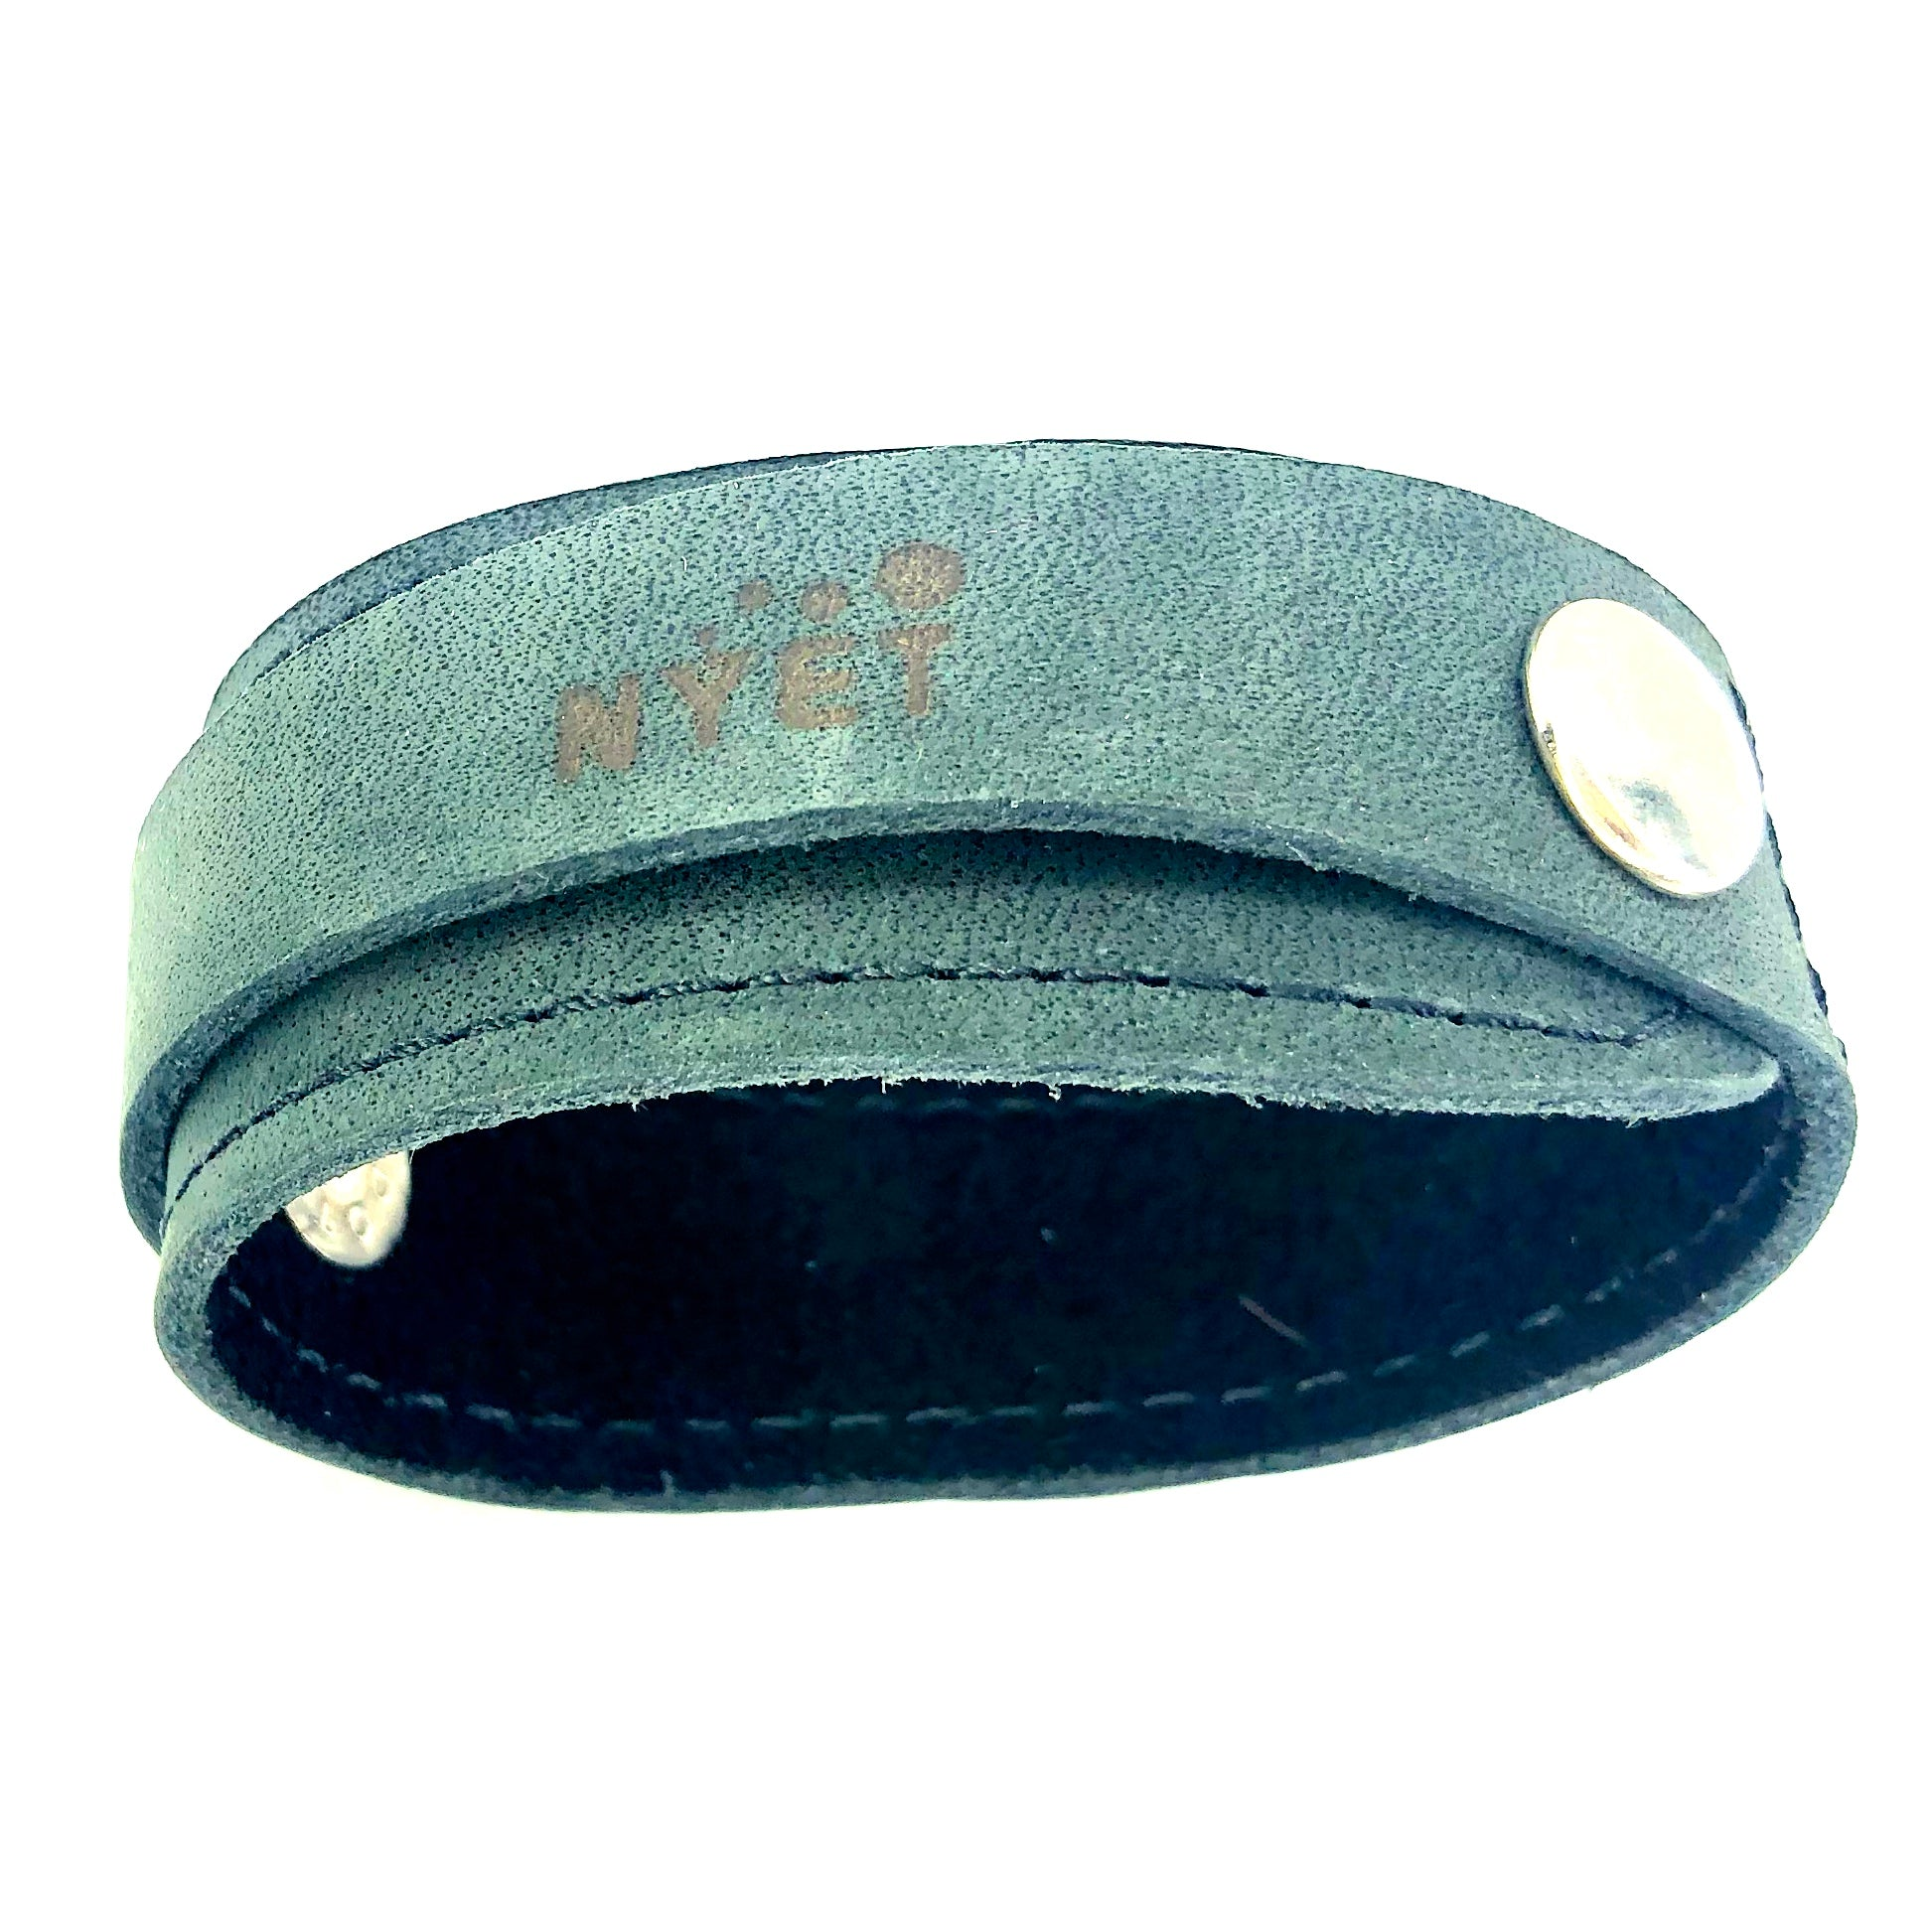 WRAP LEATHER BRACELET WITH DOUBLE SNAP CLOSURE by nyet jewelry.